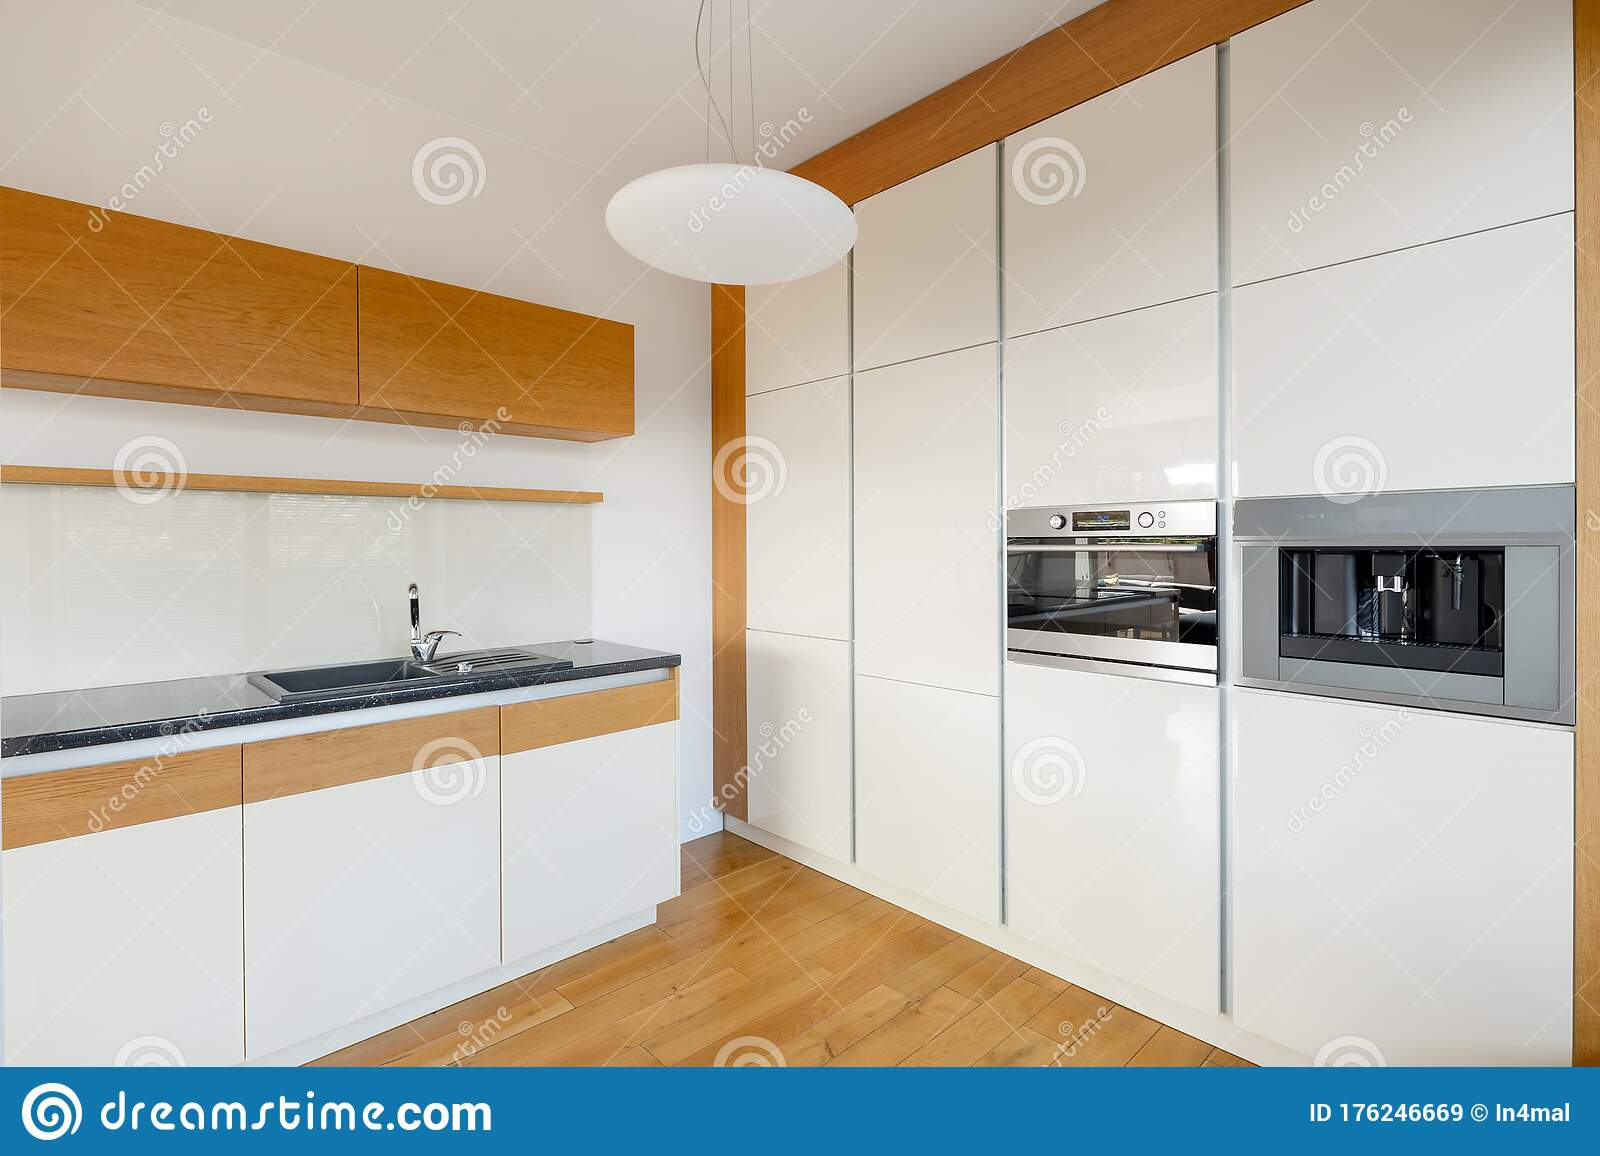 White Kitchen With Wooden Elements Stock Image Image Of House